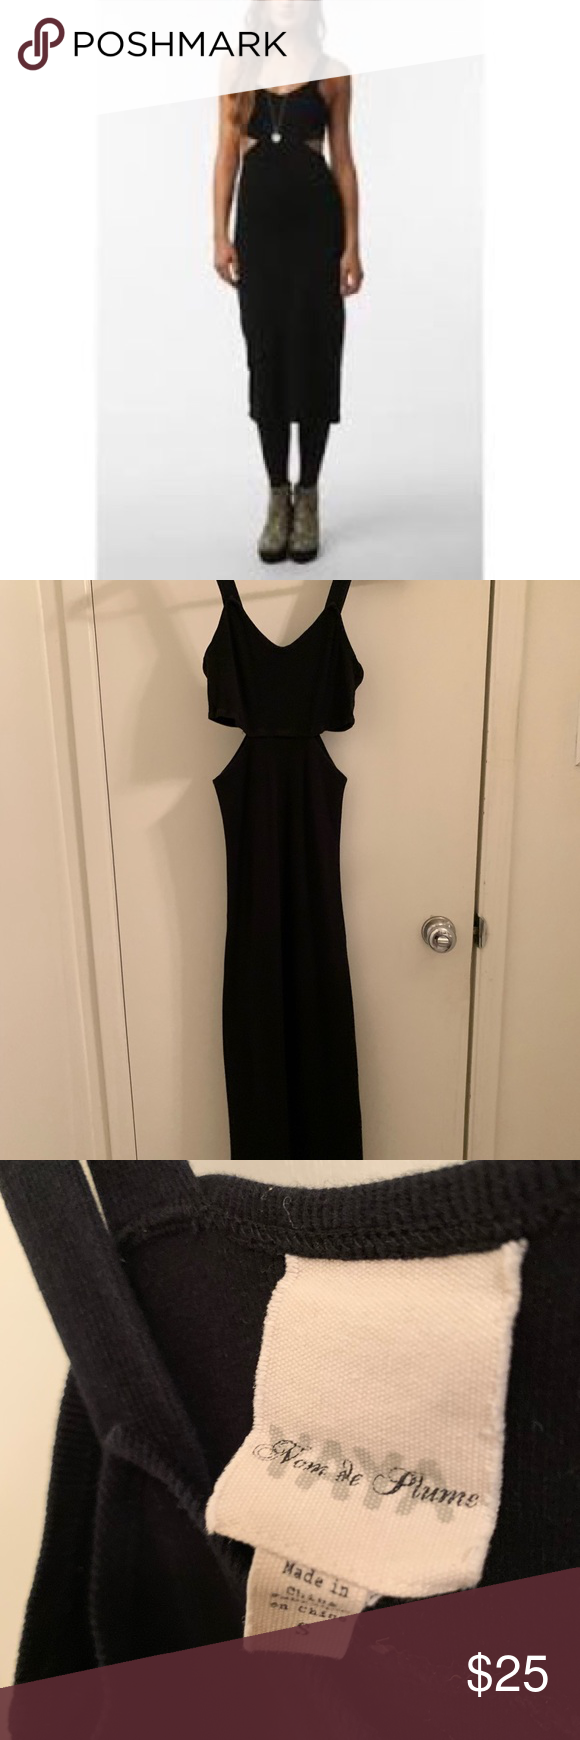 Urban Outfitters Yaya Nom De Plume Penny Dress Black Ribbed Midi Length Bodycon Dress With Side Cutouts Some Slight F Black Rib Bodycon Dress Urban Outfitters [ 1740 x 580 Pixel ]